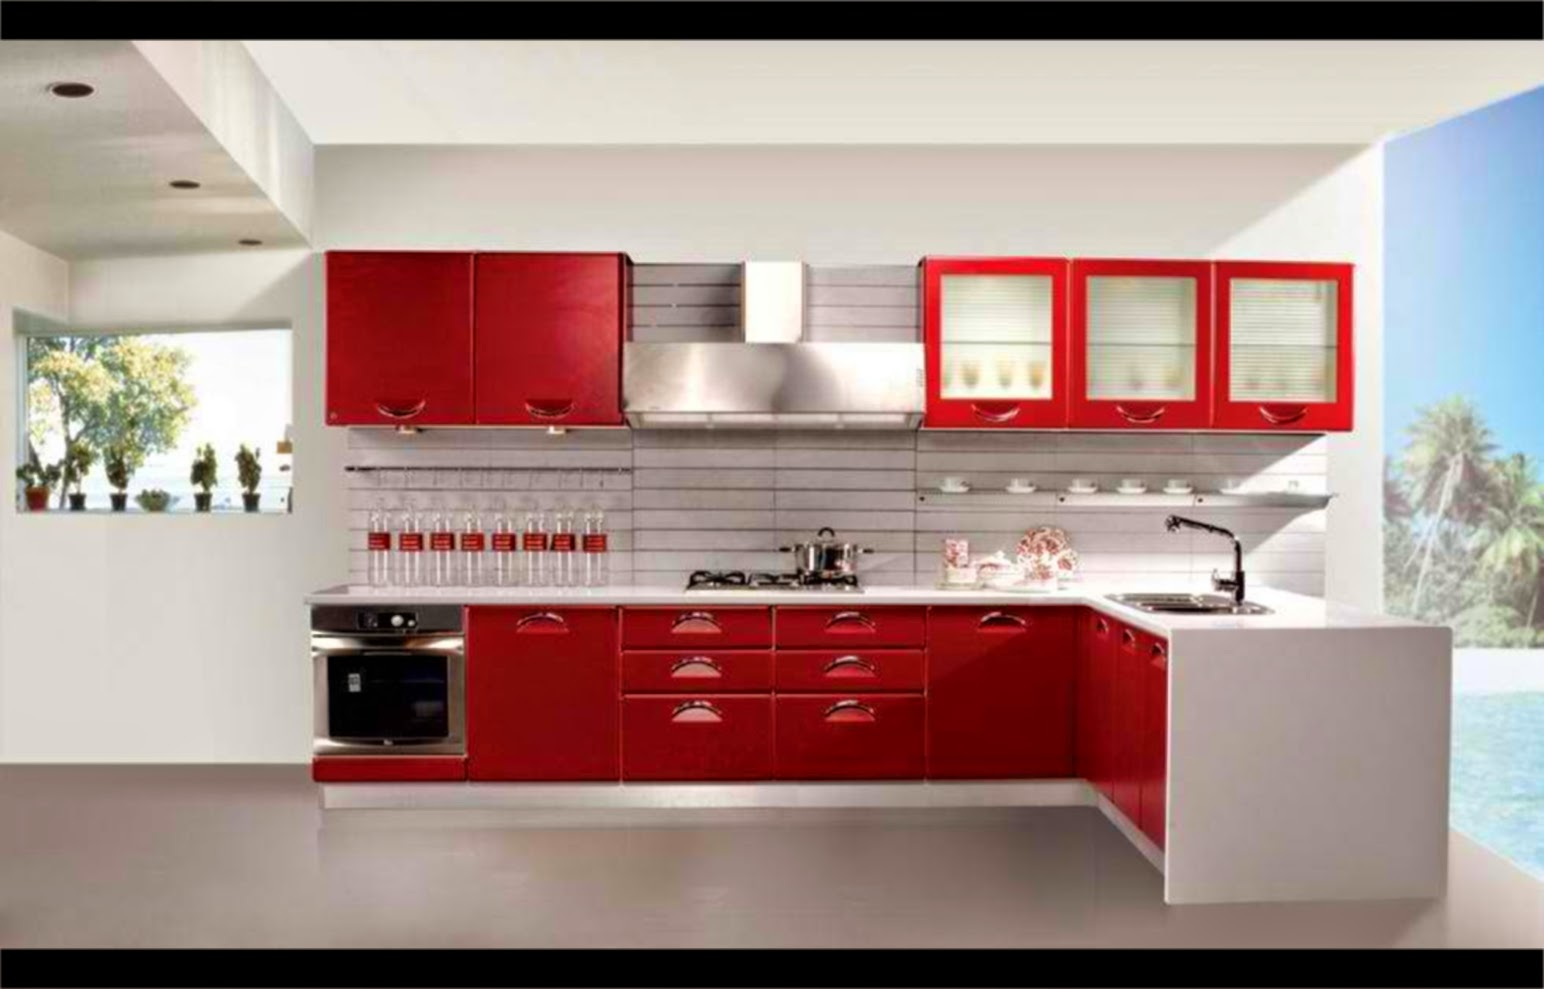 Contoh Model Kitchen Set Minimalis Rumah Minimalis Indah